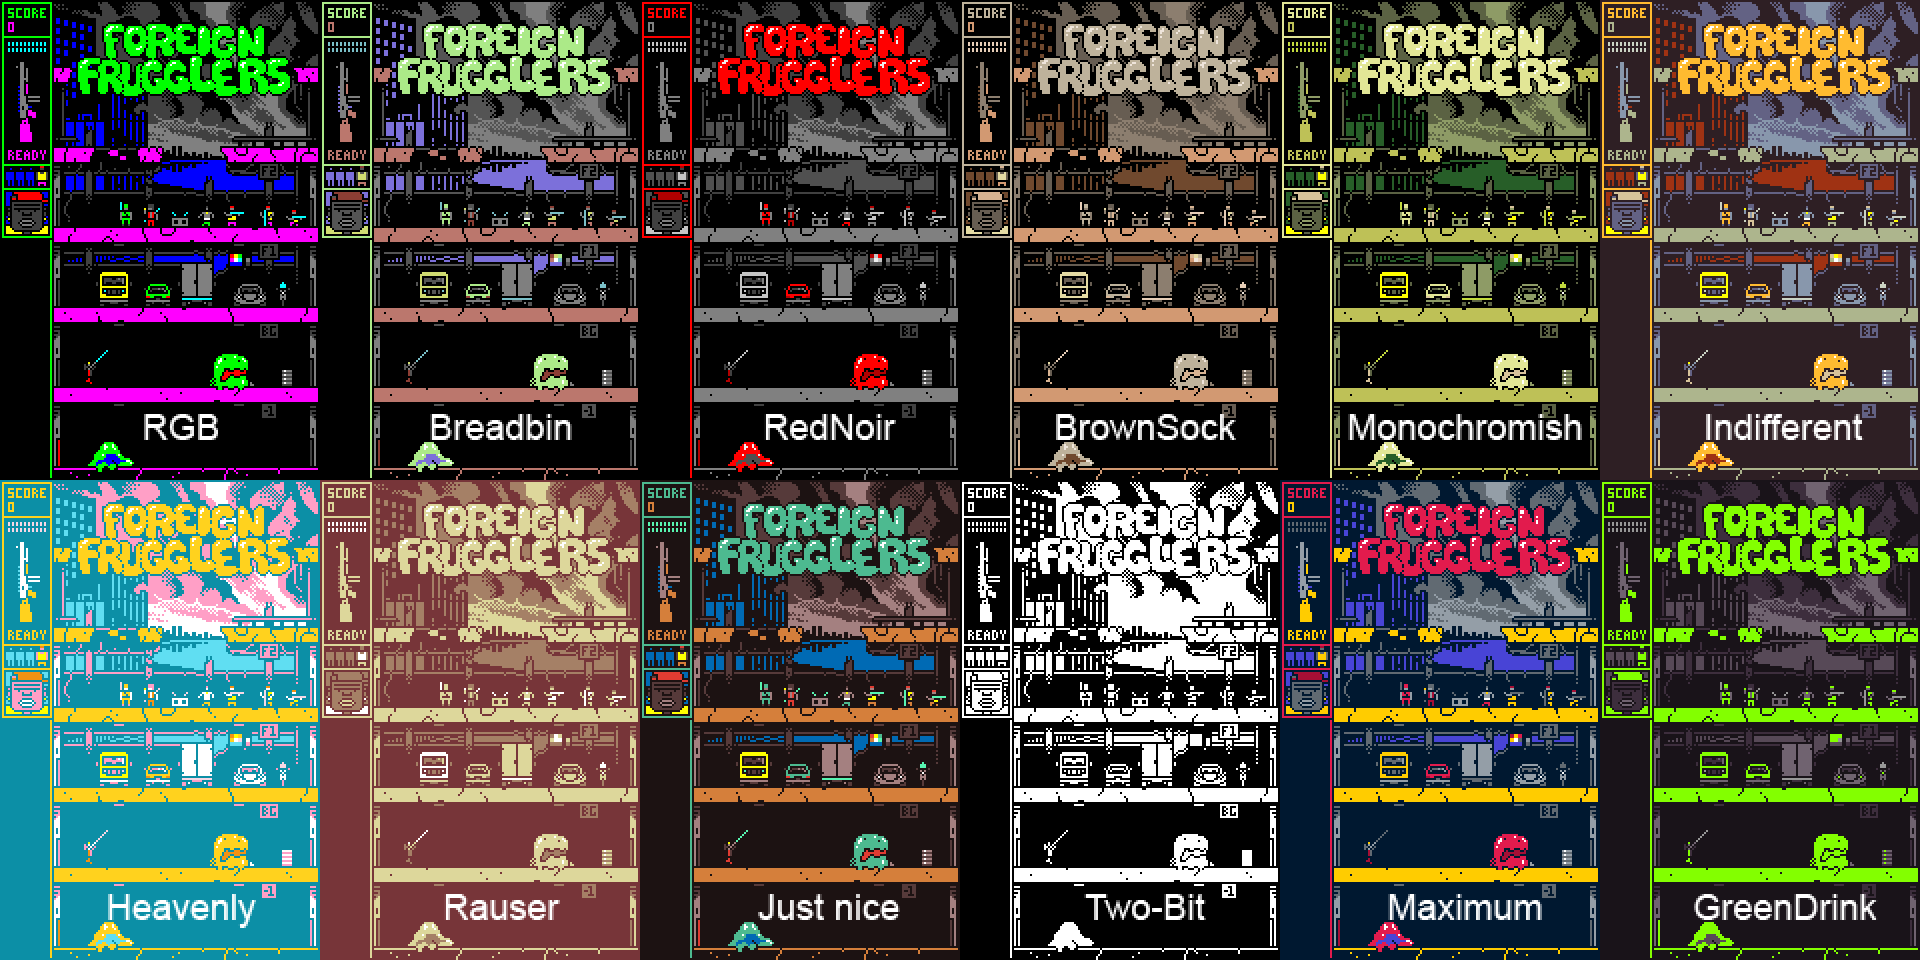 Foreign Frugglers Endless Mode Palettes